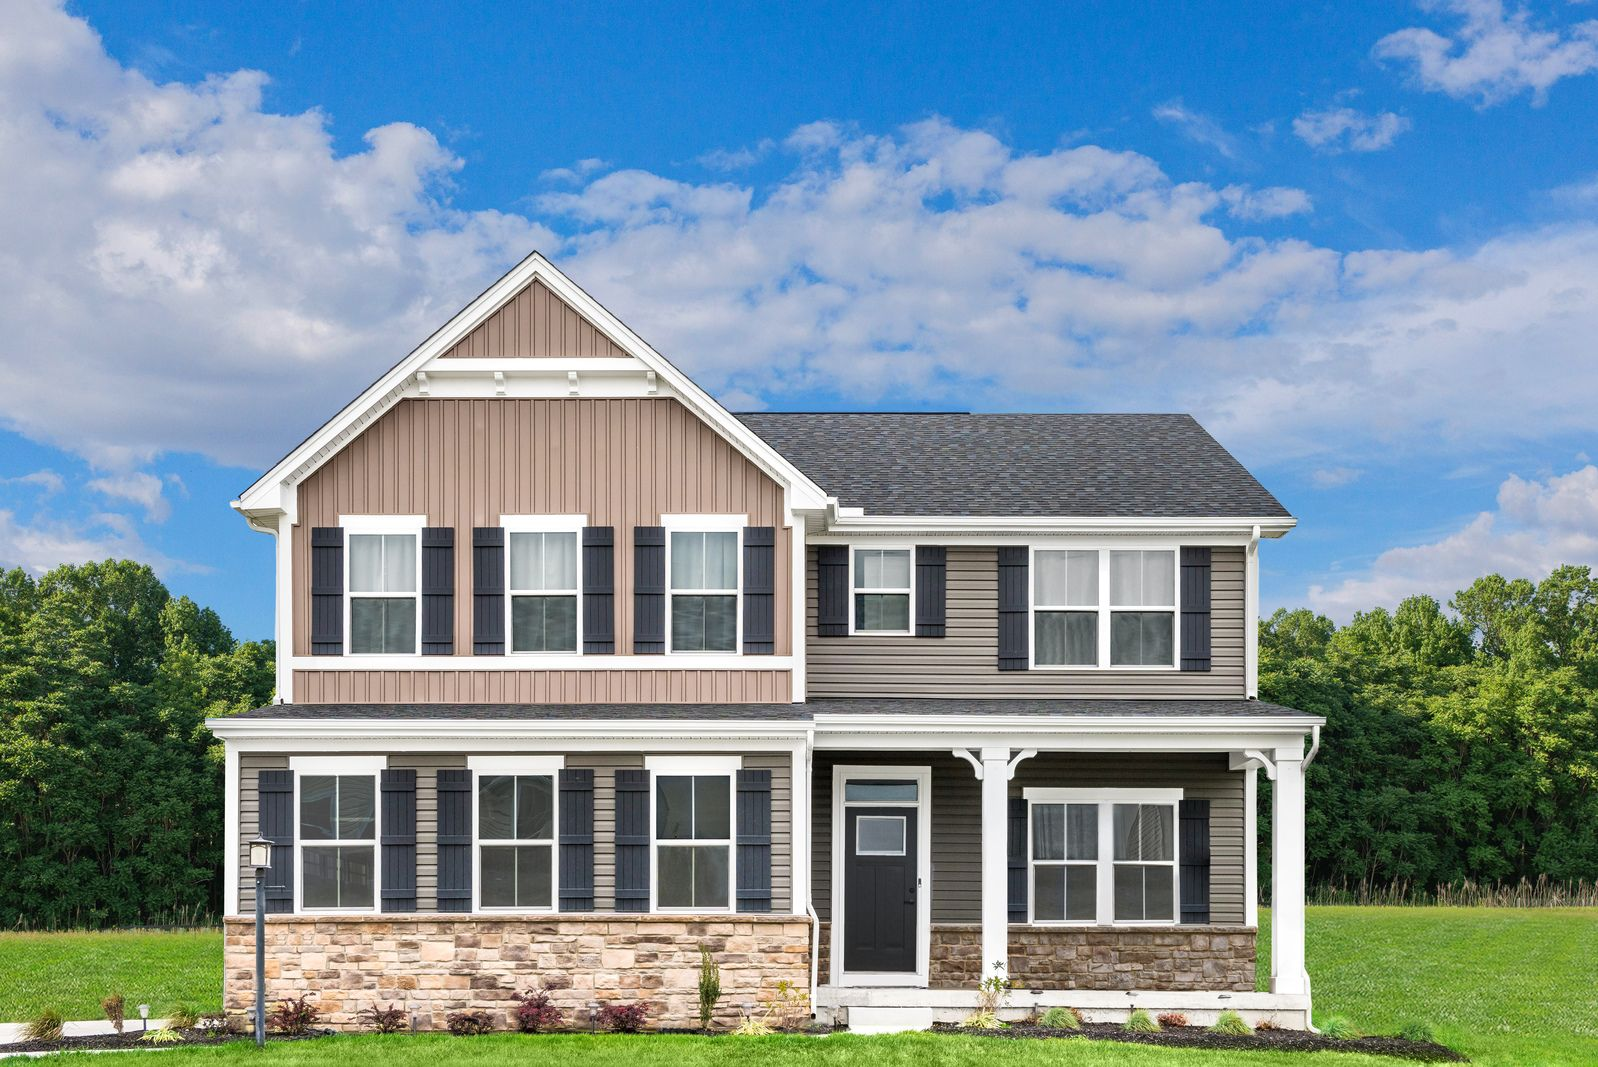 Come home to Kingsland Reserve:A new, tucked-away community of affordable homes in the LC Bird school district. Just 20 minutes to downtown w/ easy access to Rte 10, shopping & dining, frommid $300s.Click here to be a VIP!